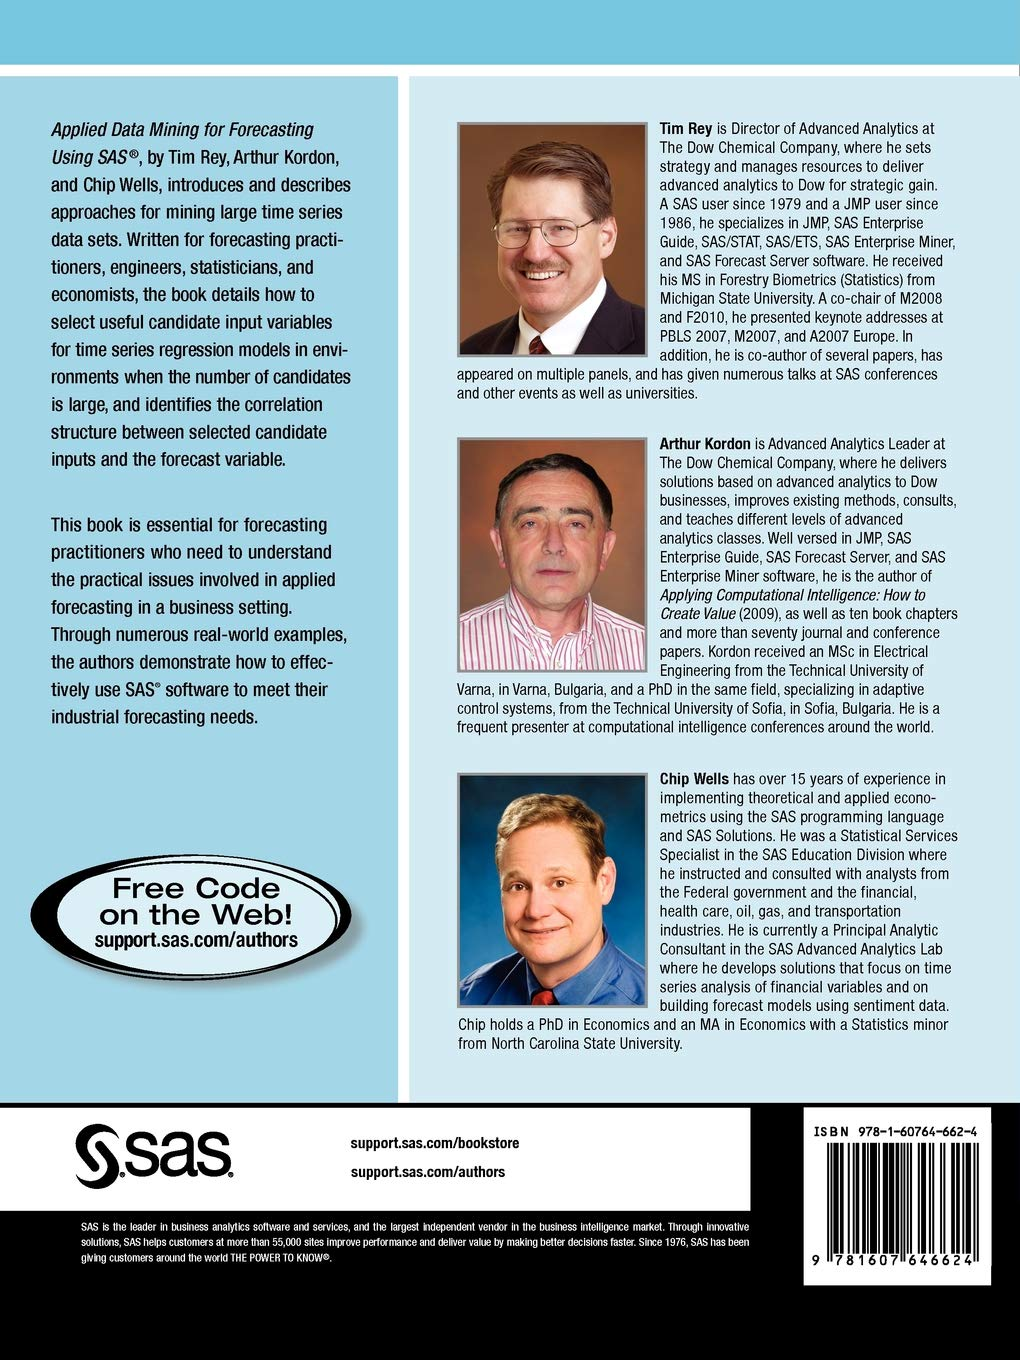 Buy Applied Data Mining for Forecasting Using SAS Book